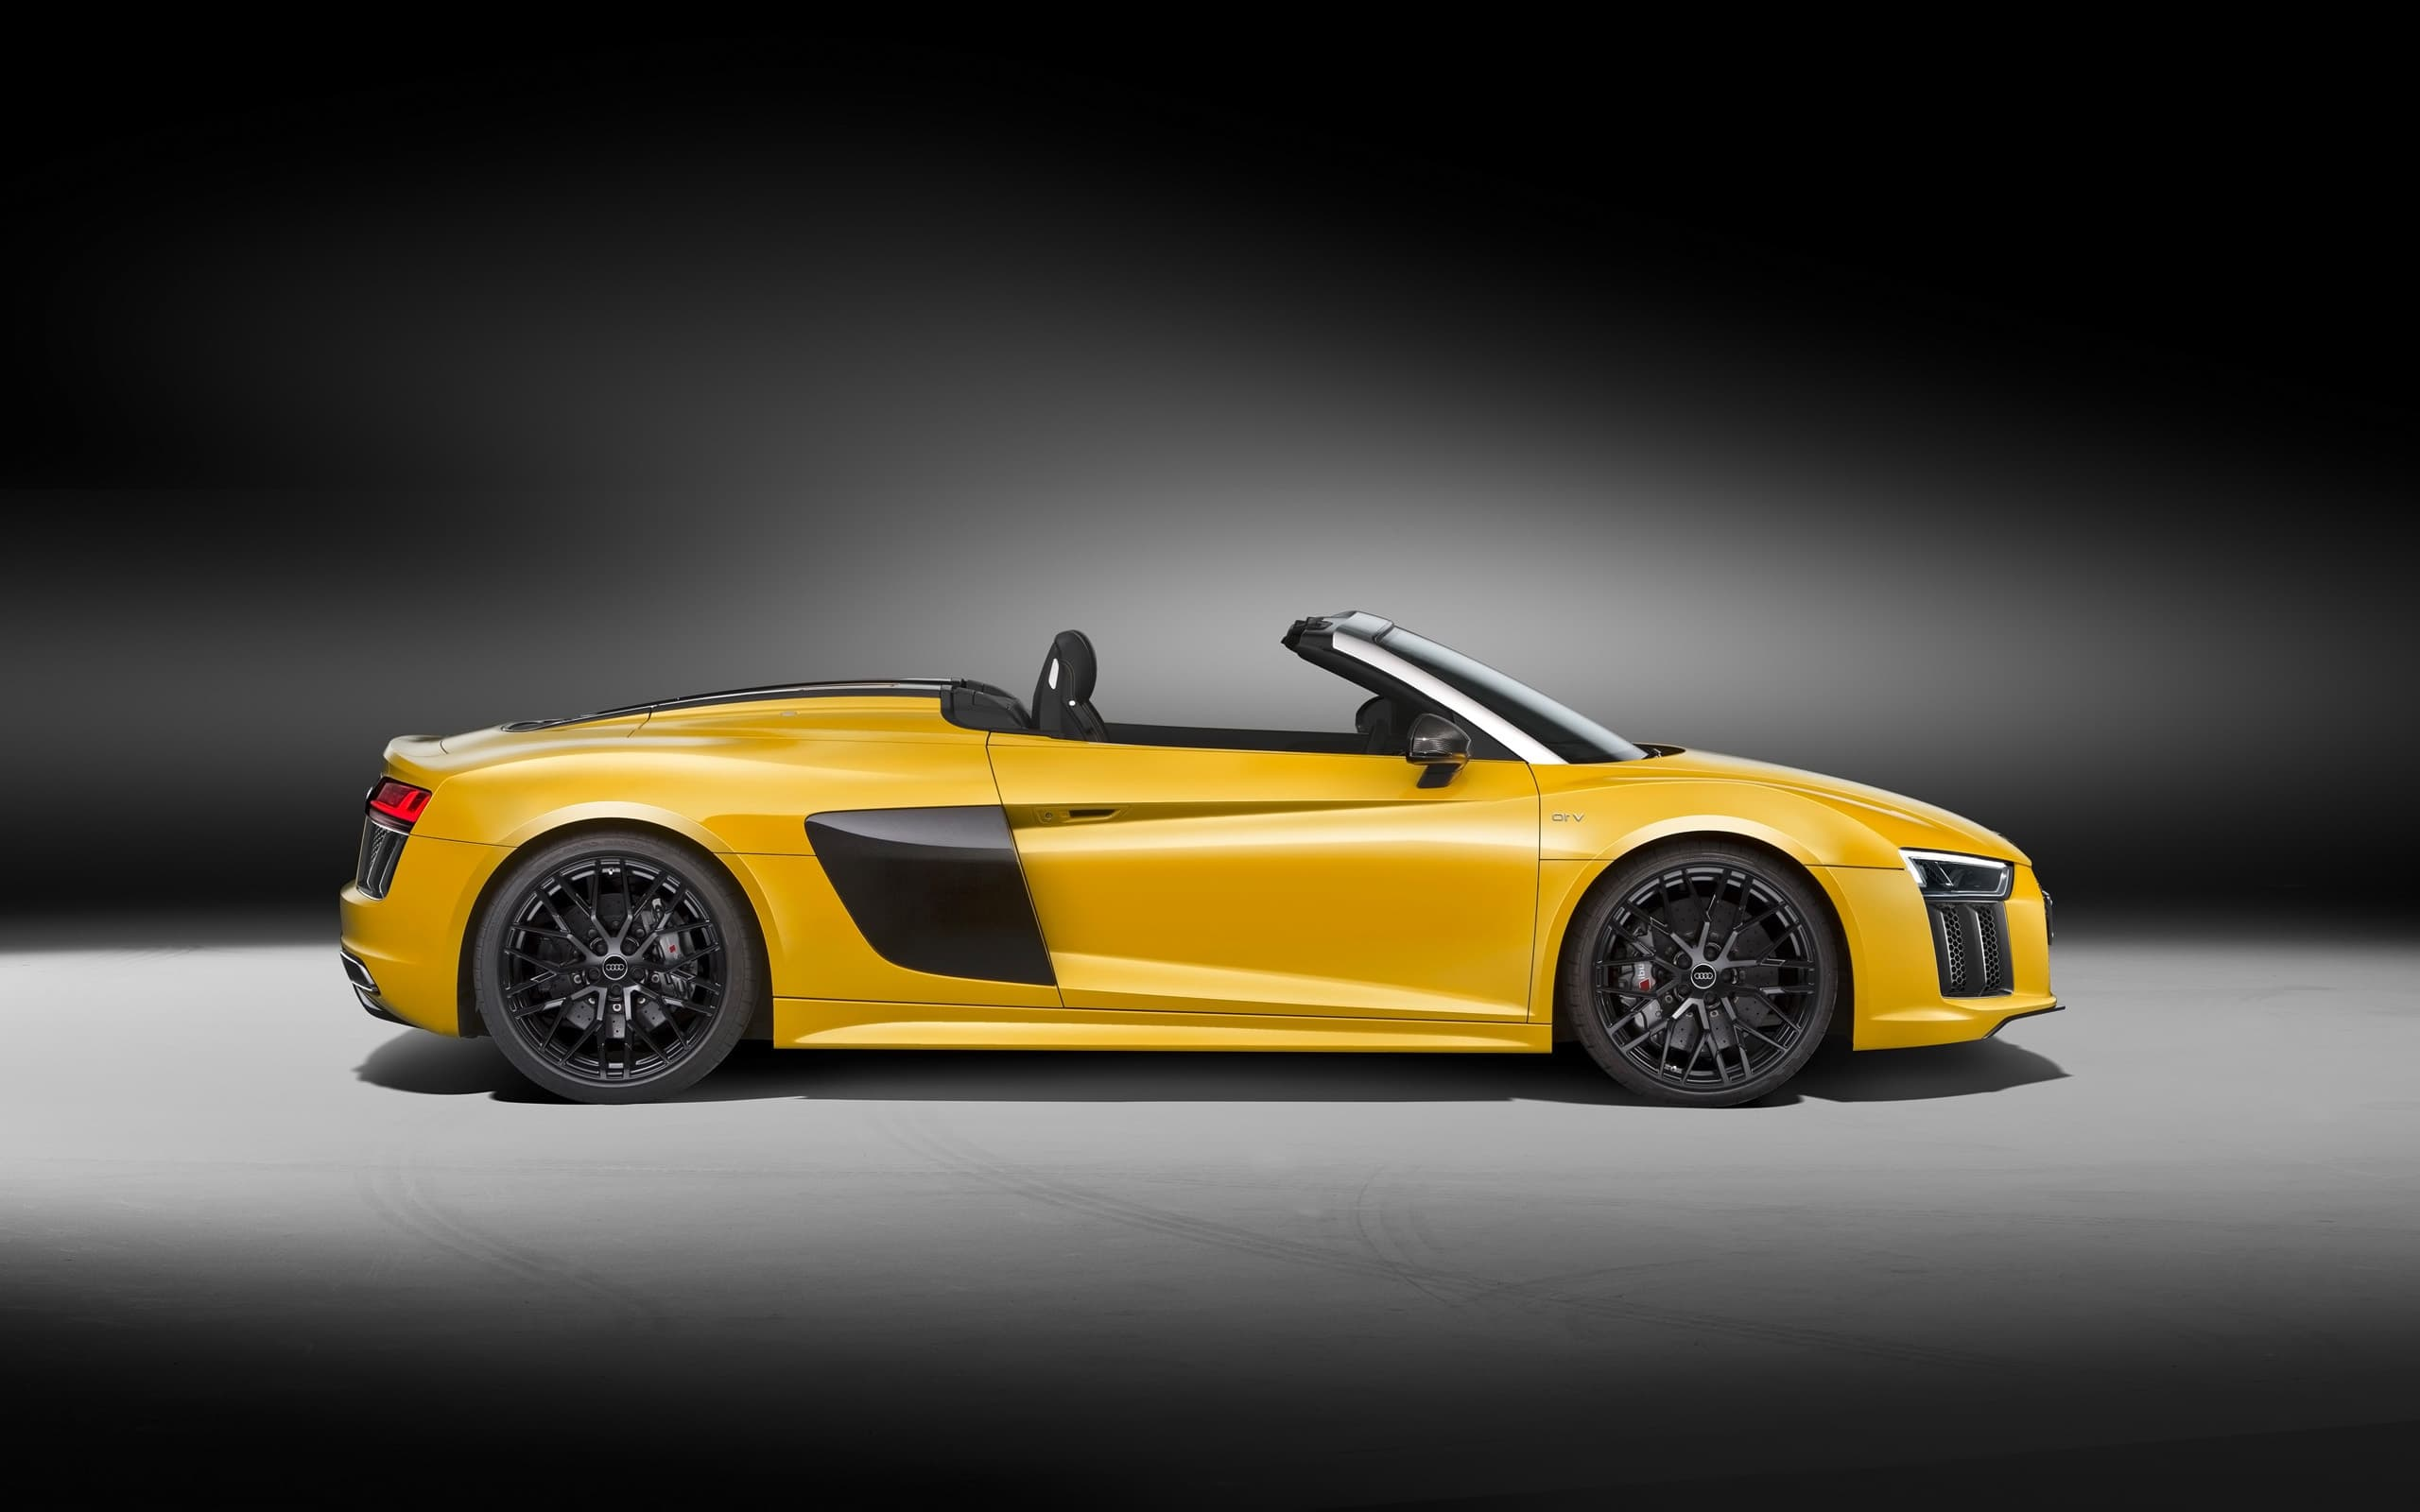 Car Wallpapers Download Full Hd 2017 Audi R8 Spyder V10 Wallpapers High Quality Resolution